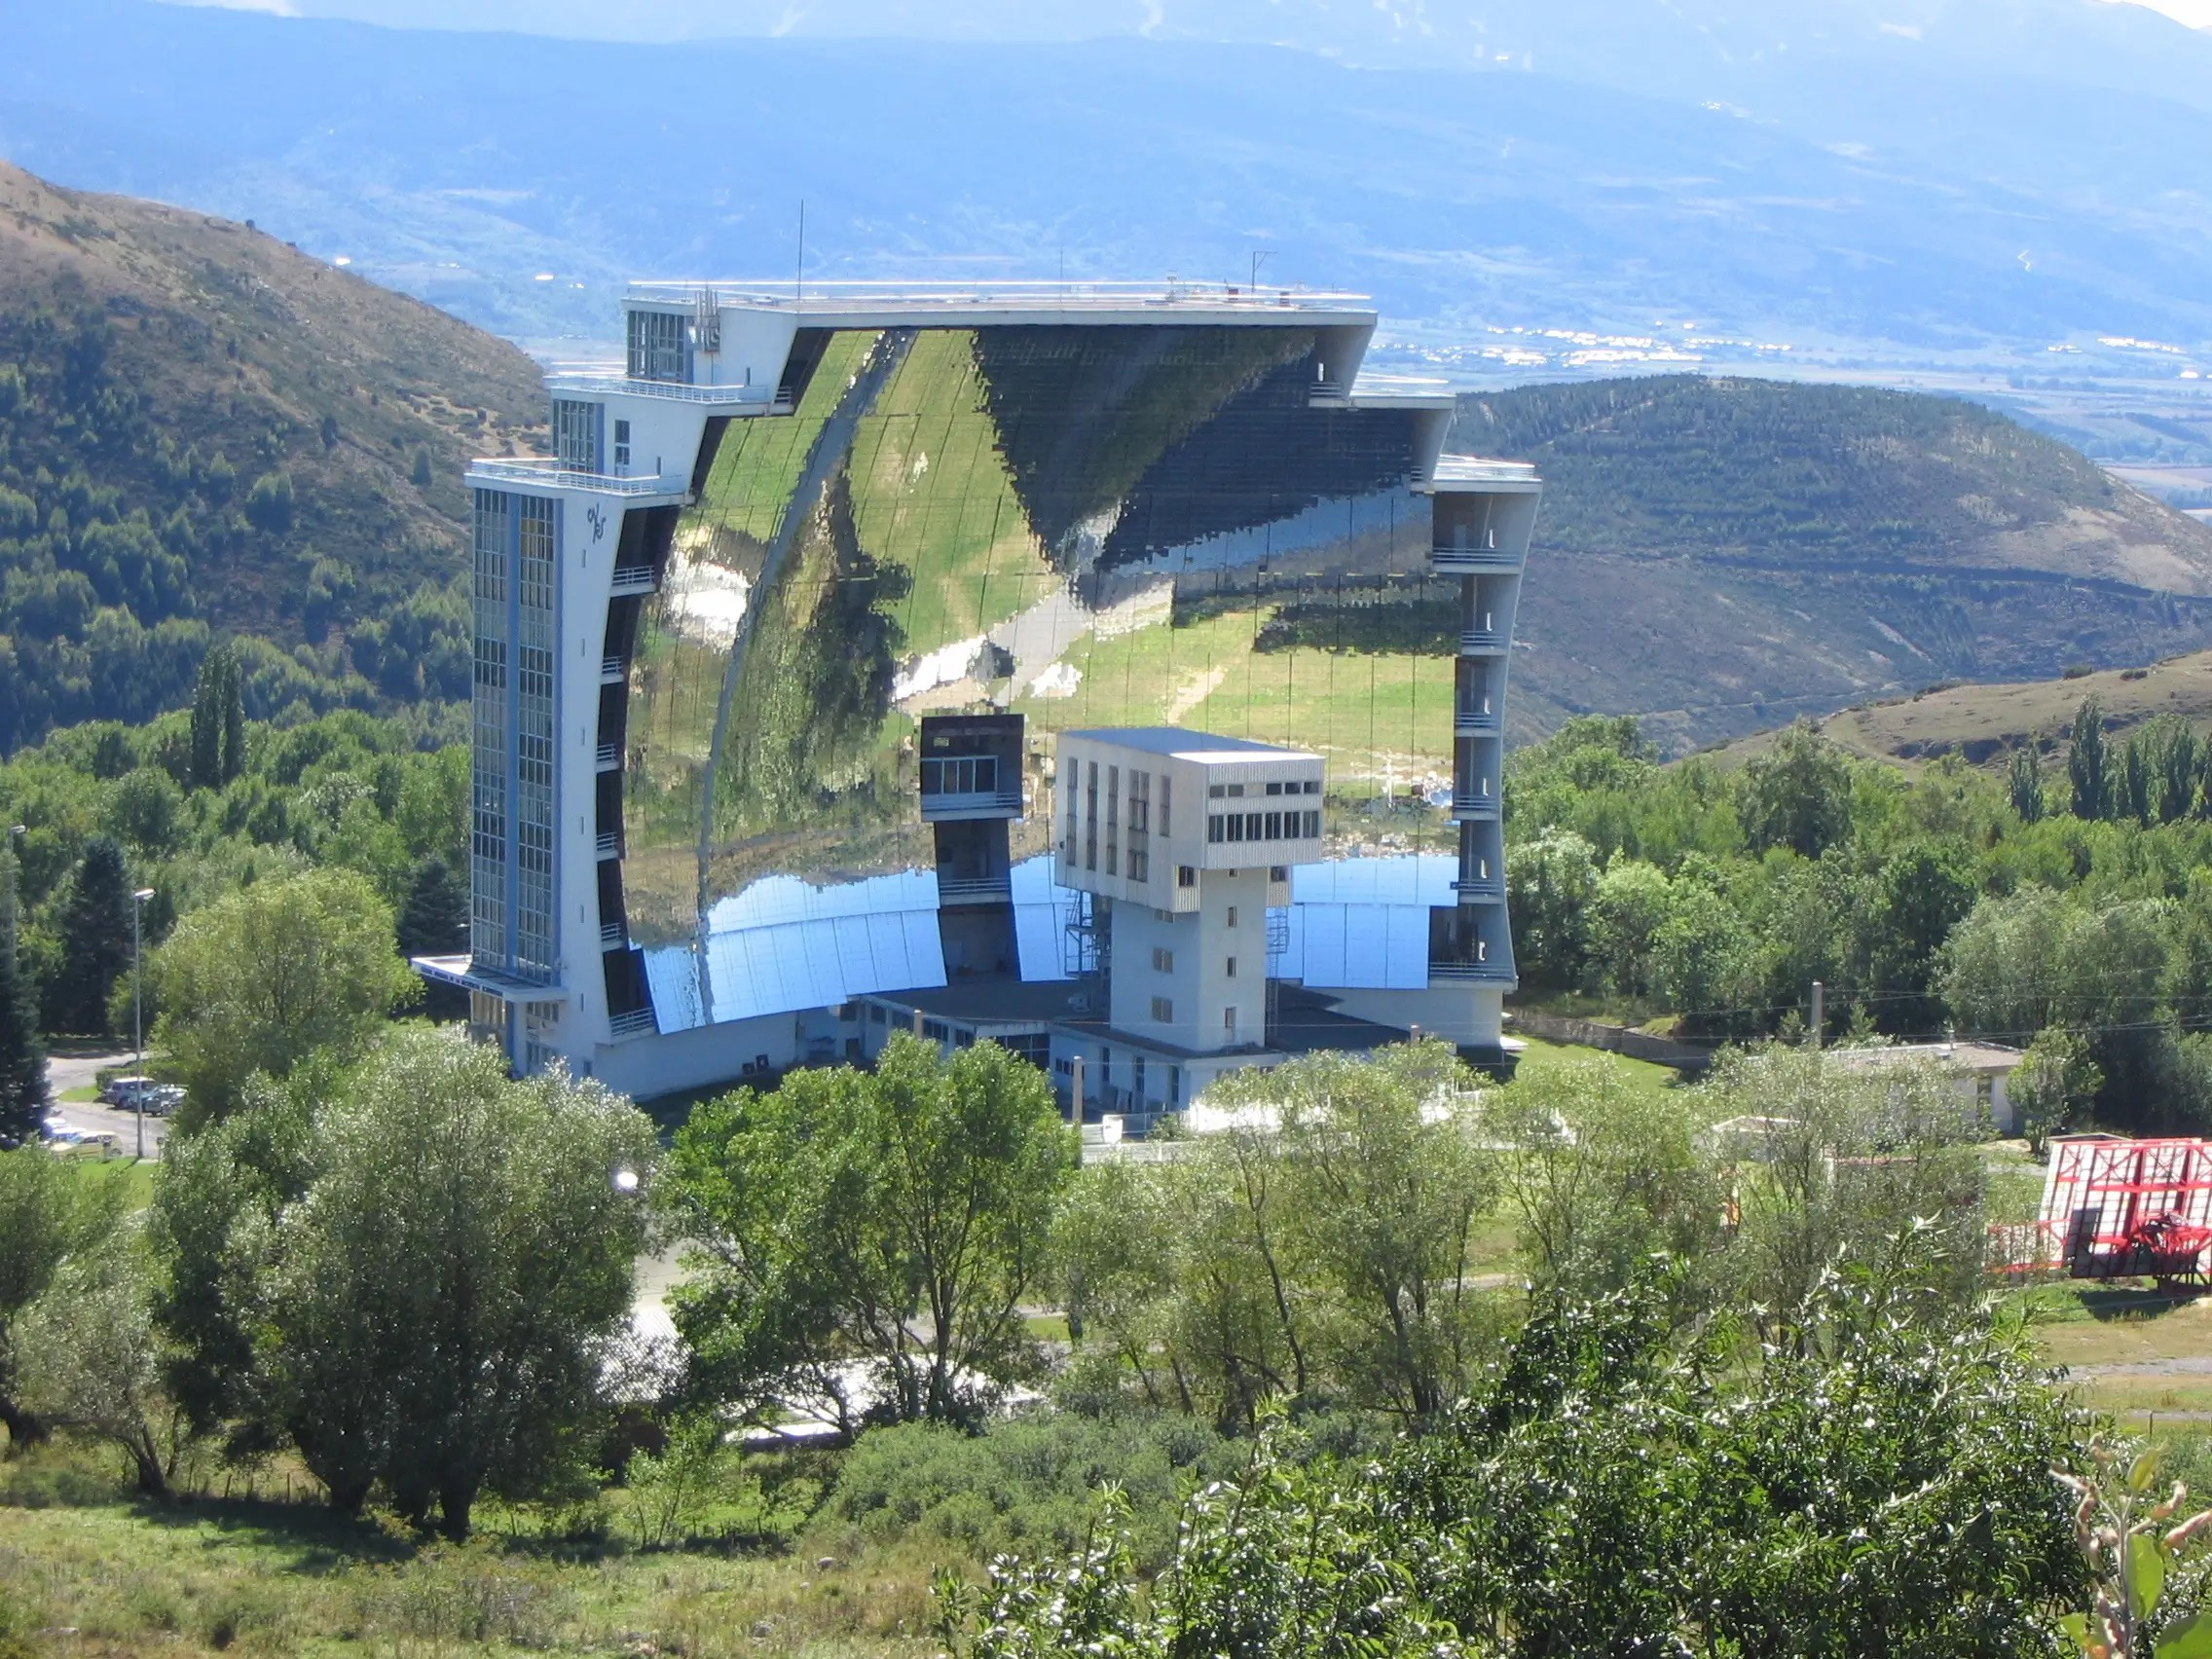 7. The world's largest solar furnace can be found in Odeillo, France. It can reach temperatures of more than 3,000 degrees Celcius.